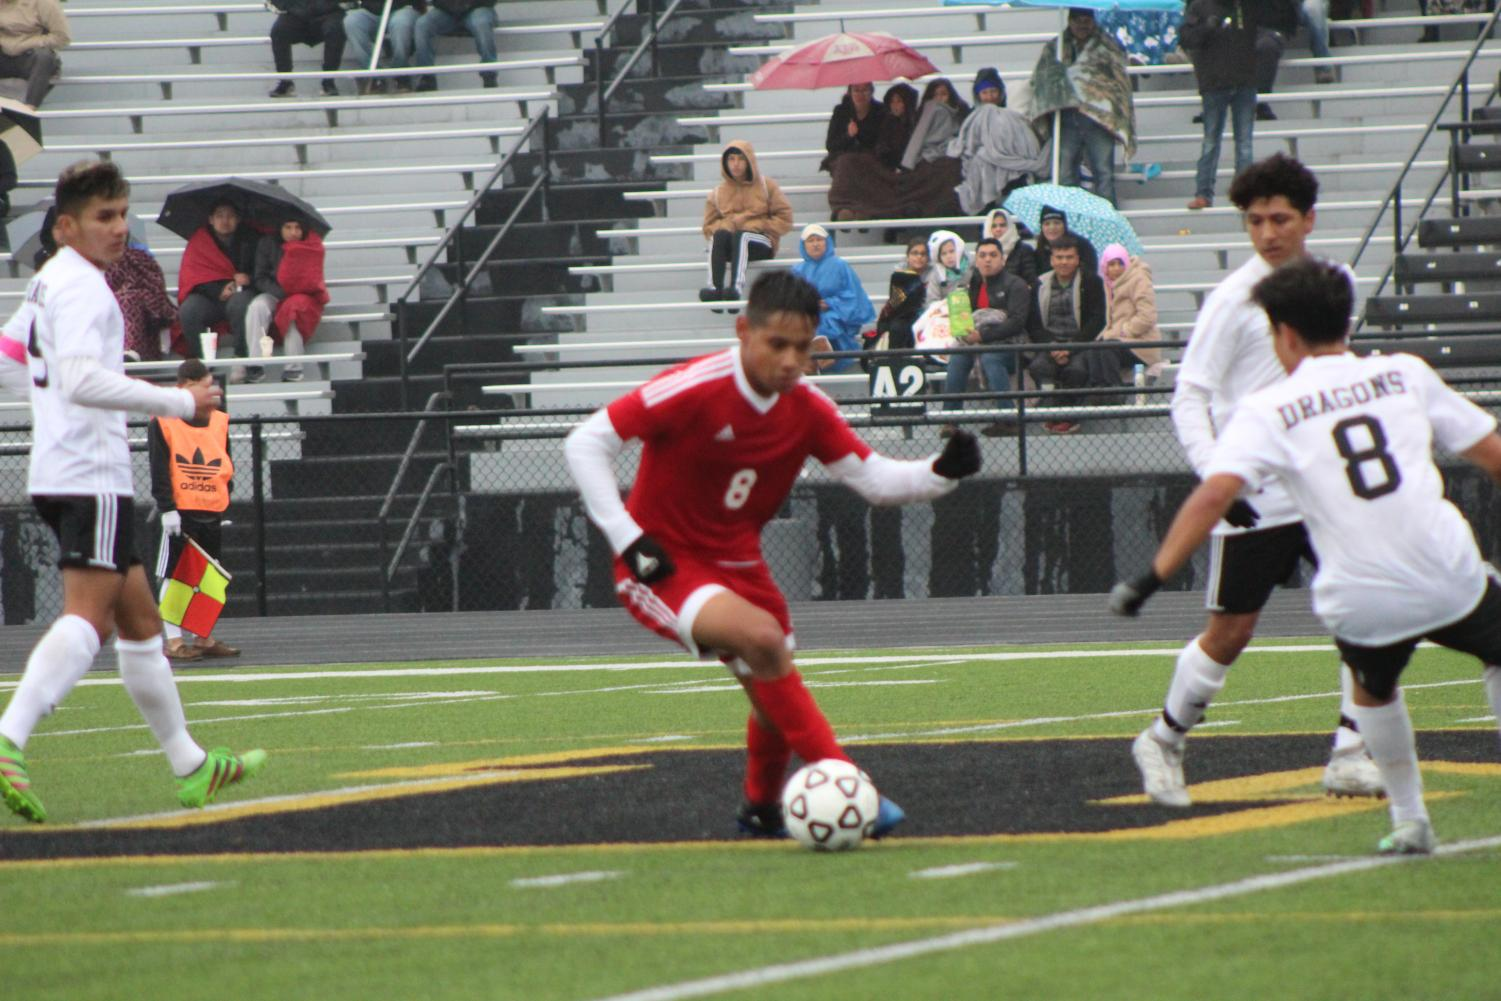 Junior Gavino Baldazo takes on defender.